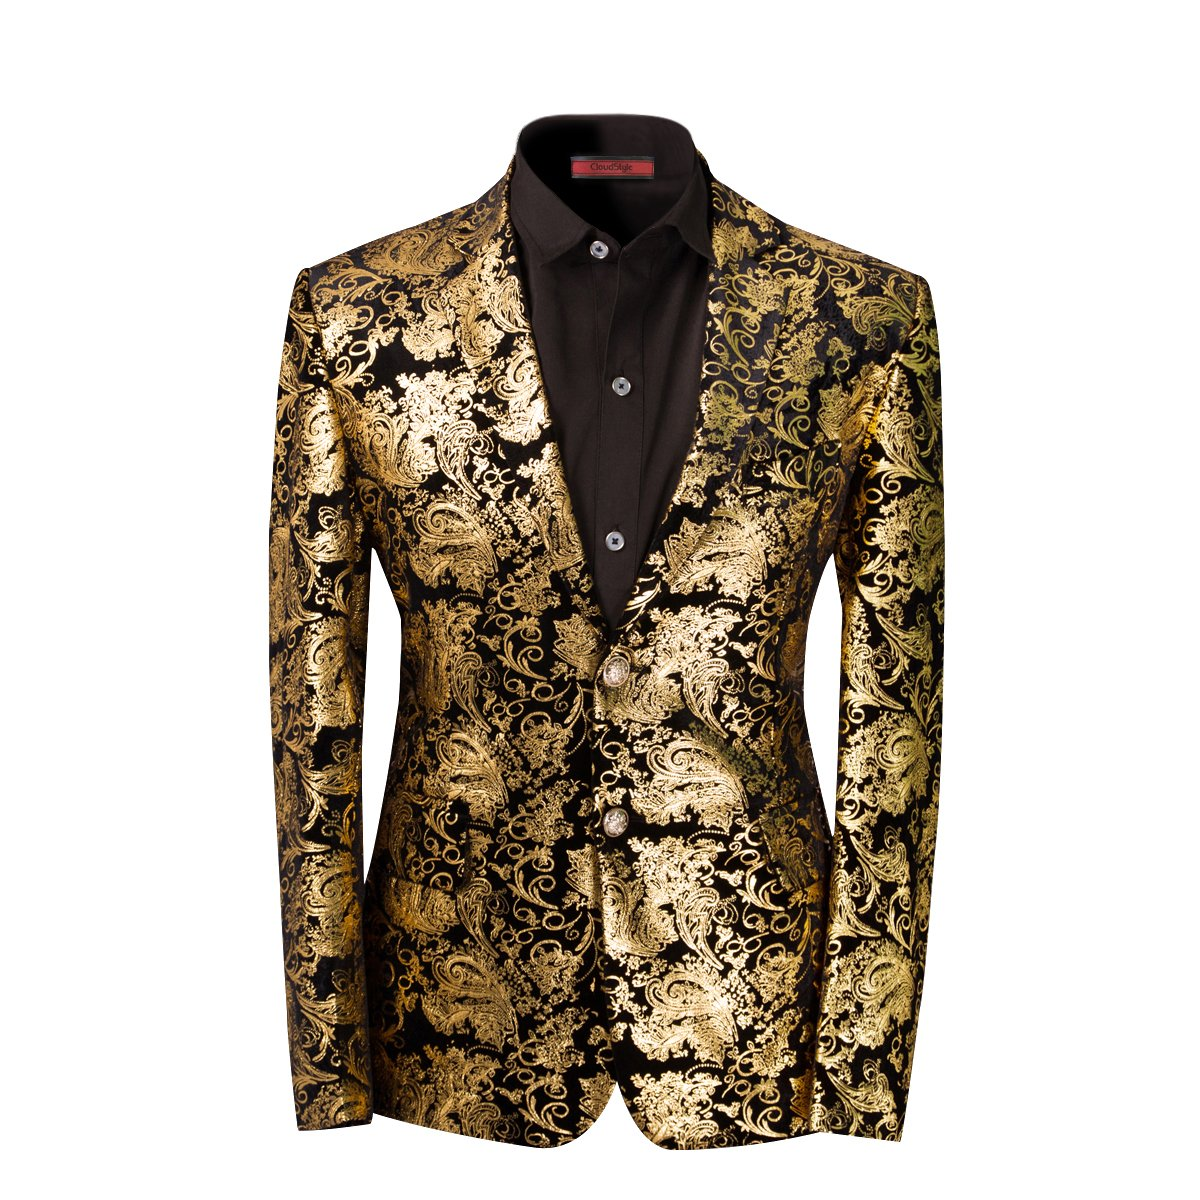 Men's luxury Casual Dress Suit Slim Fit Stylish Blazer Golden XXXXX-Large